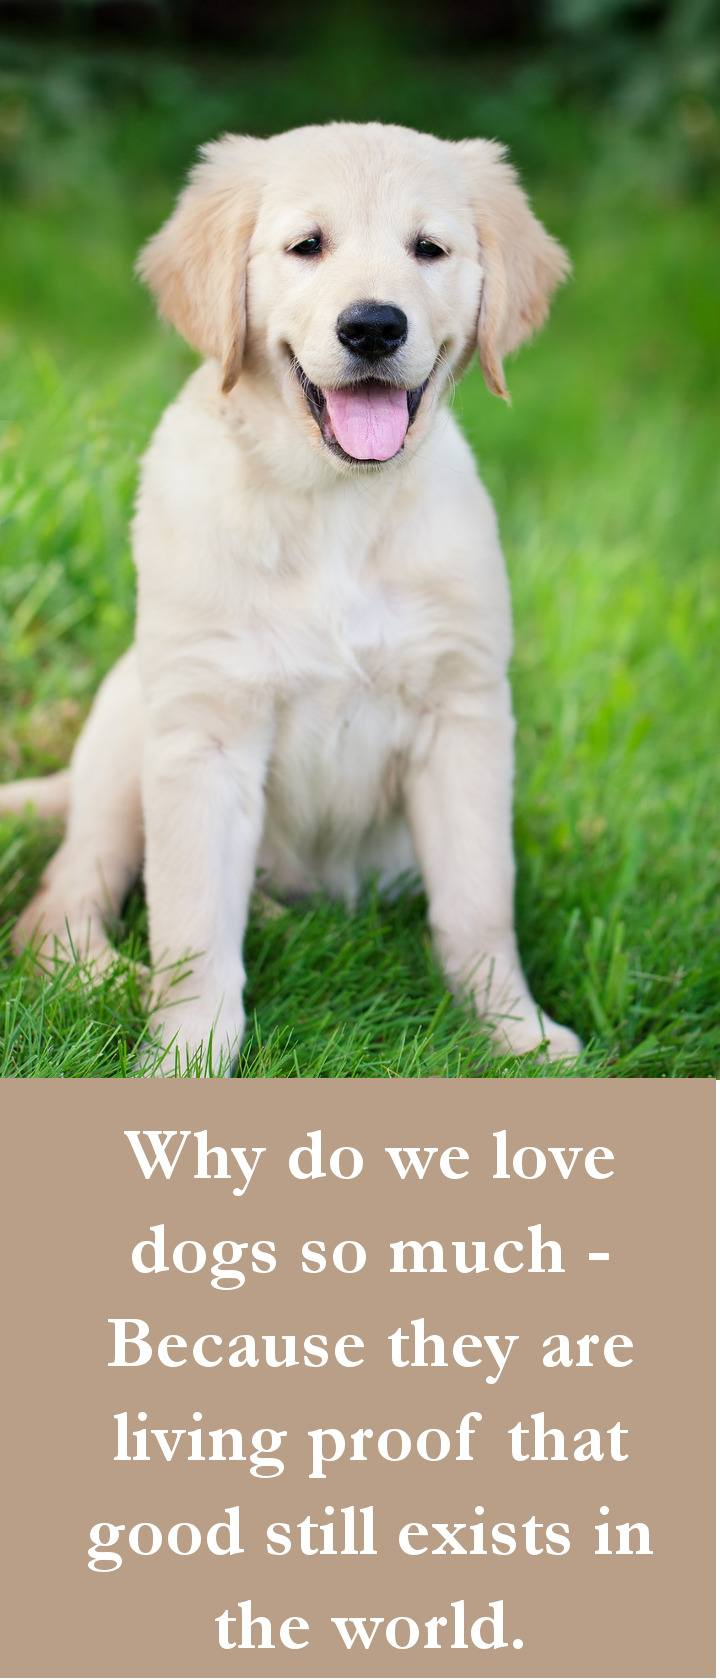 Dog Love Quotes 27 Beautiful Dog Quotes  Some Touching Some Poignant & Some Funny